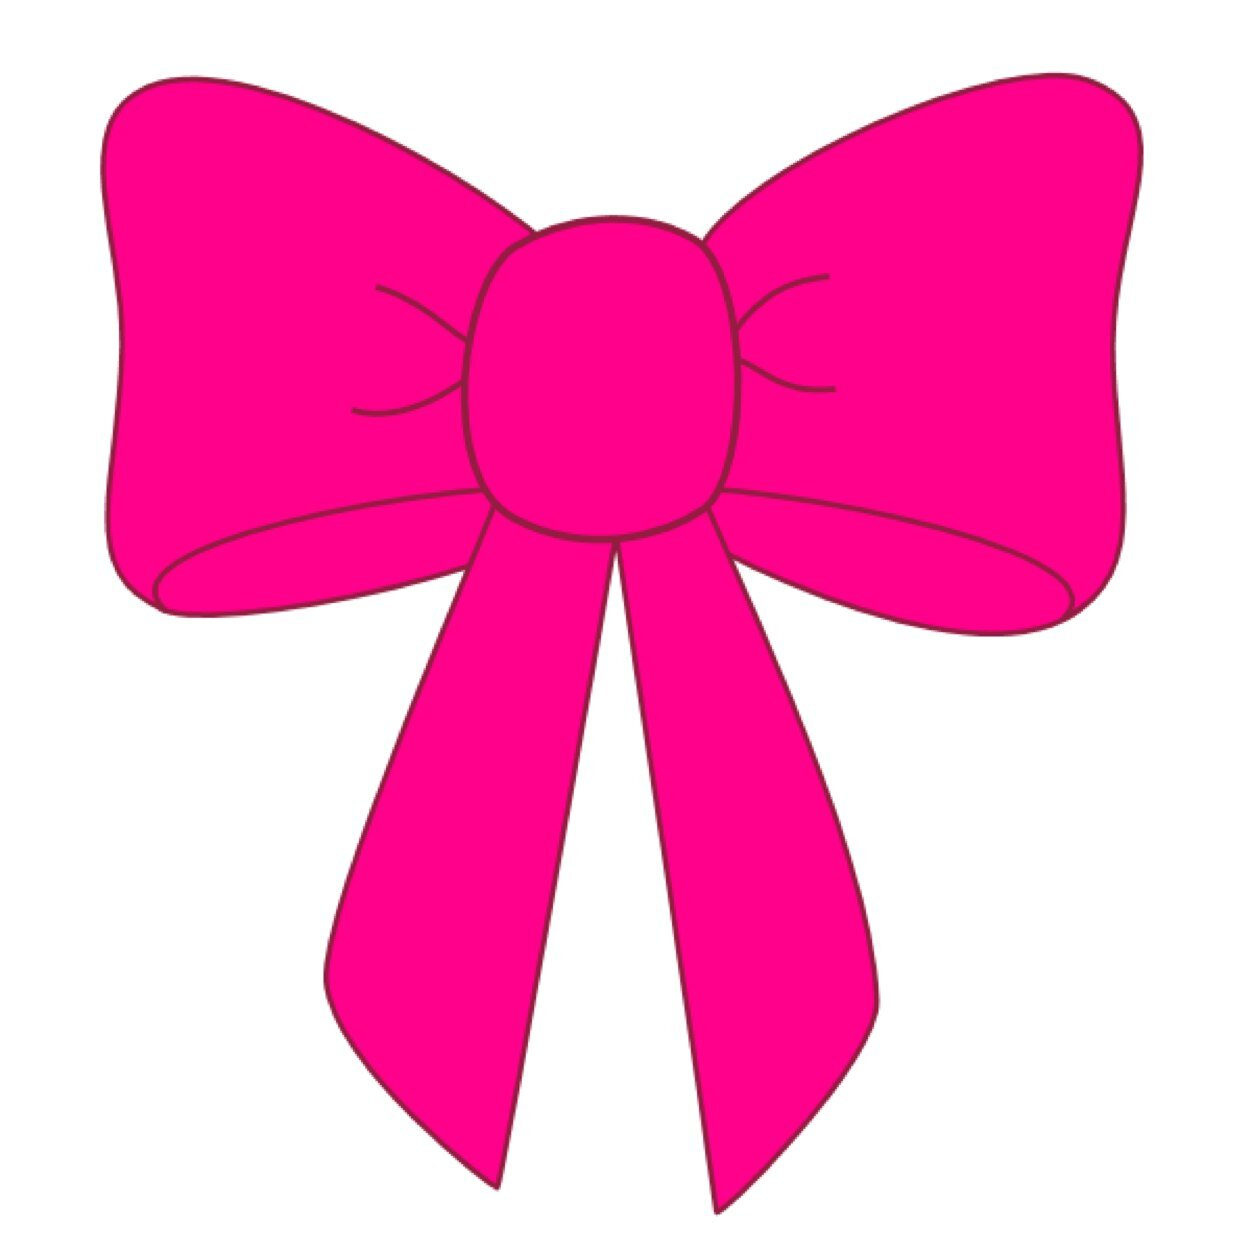 Pink Hair clipart girly bow Pink Bow (@PinkBowGirl92) Girl Twitter